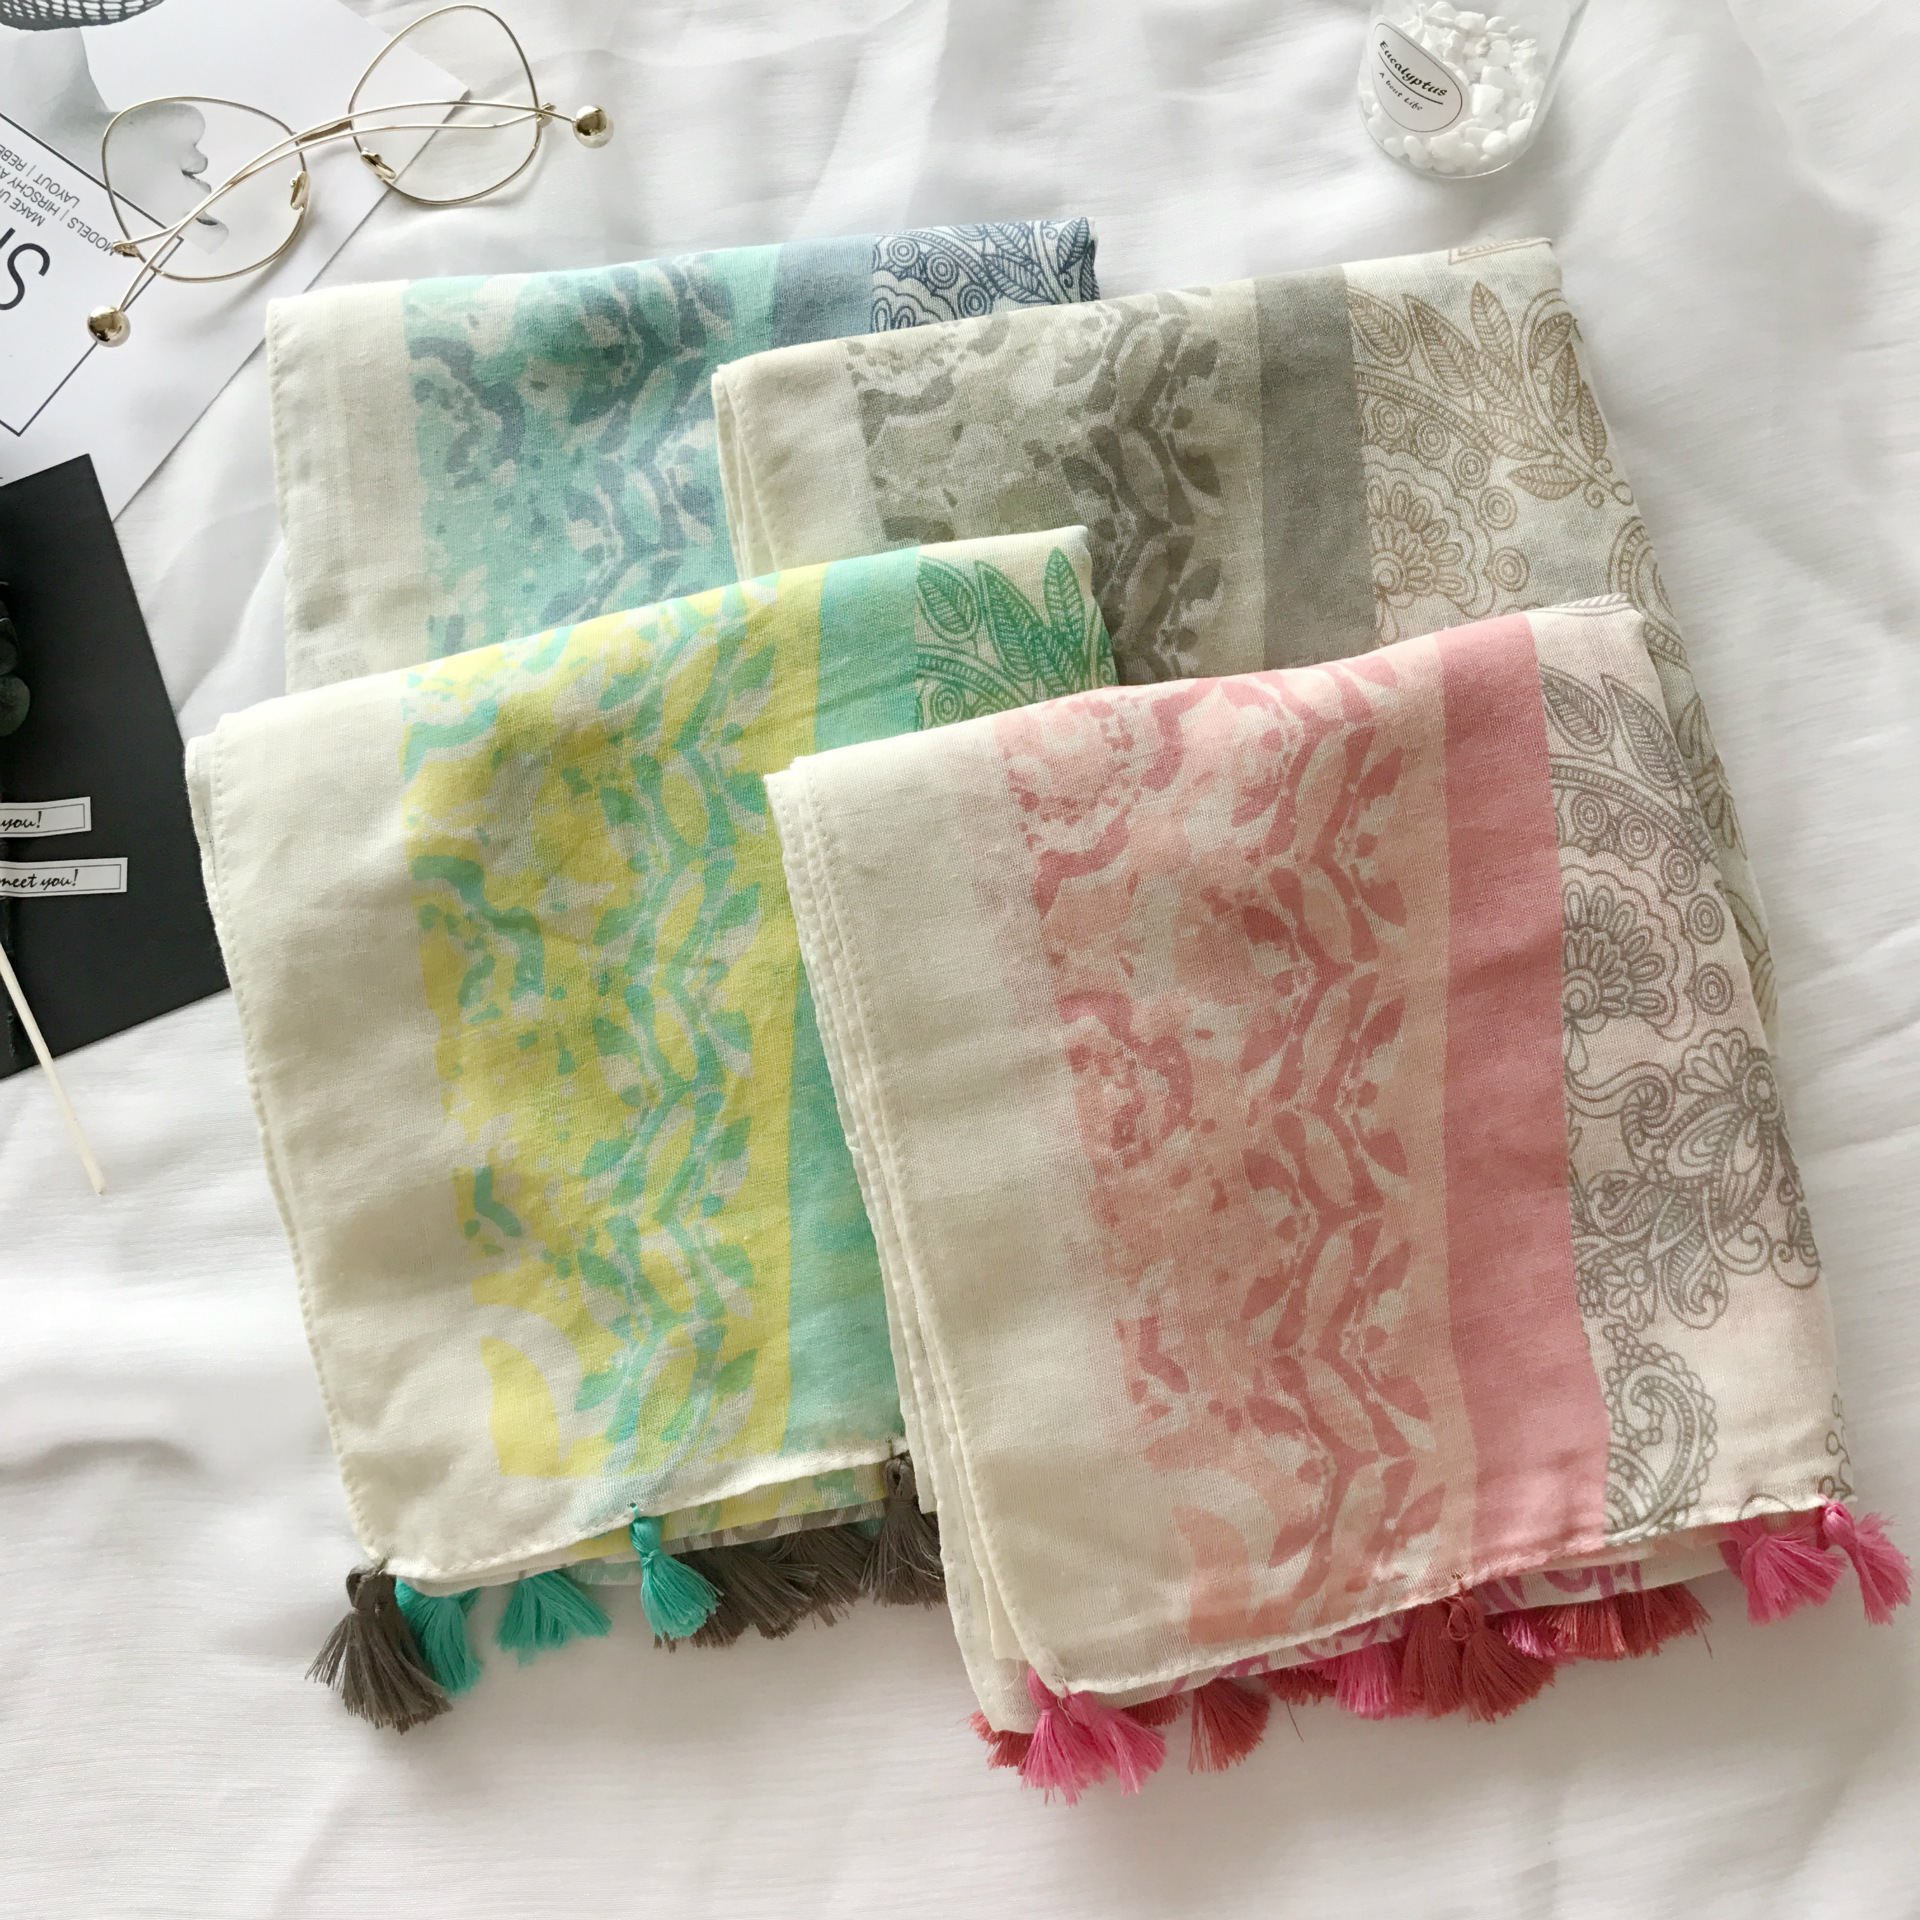 Spring spring new female scarf color cotton small fresh cashew fringed folk style long scarf shawl<br><br>Aliexpress